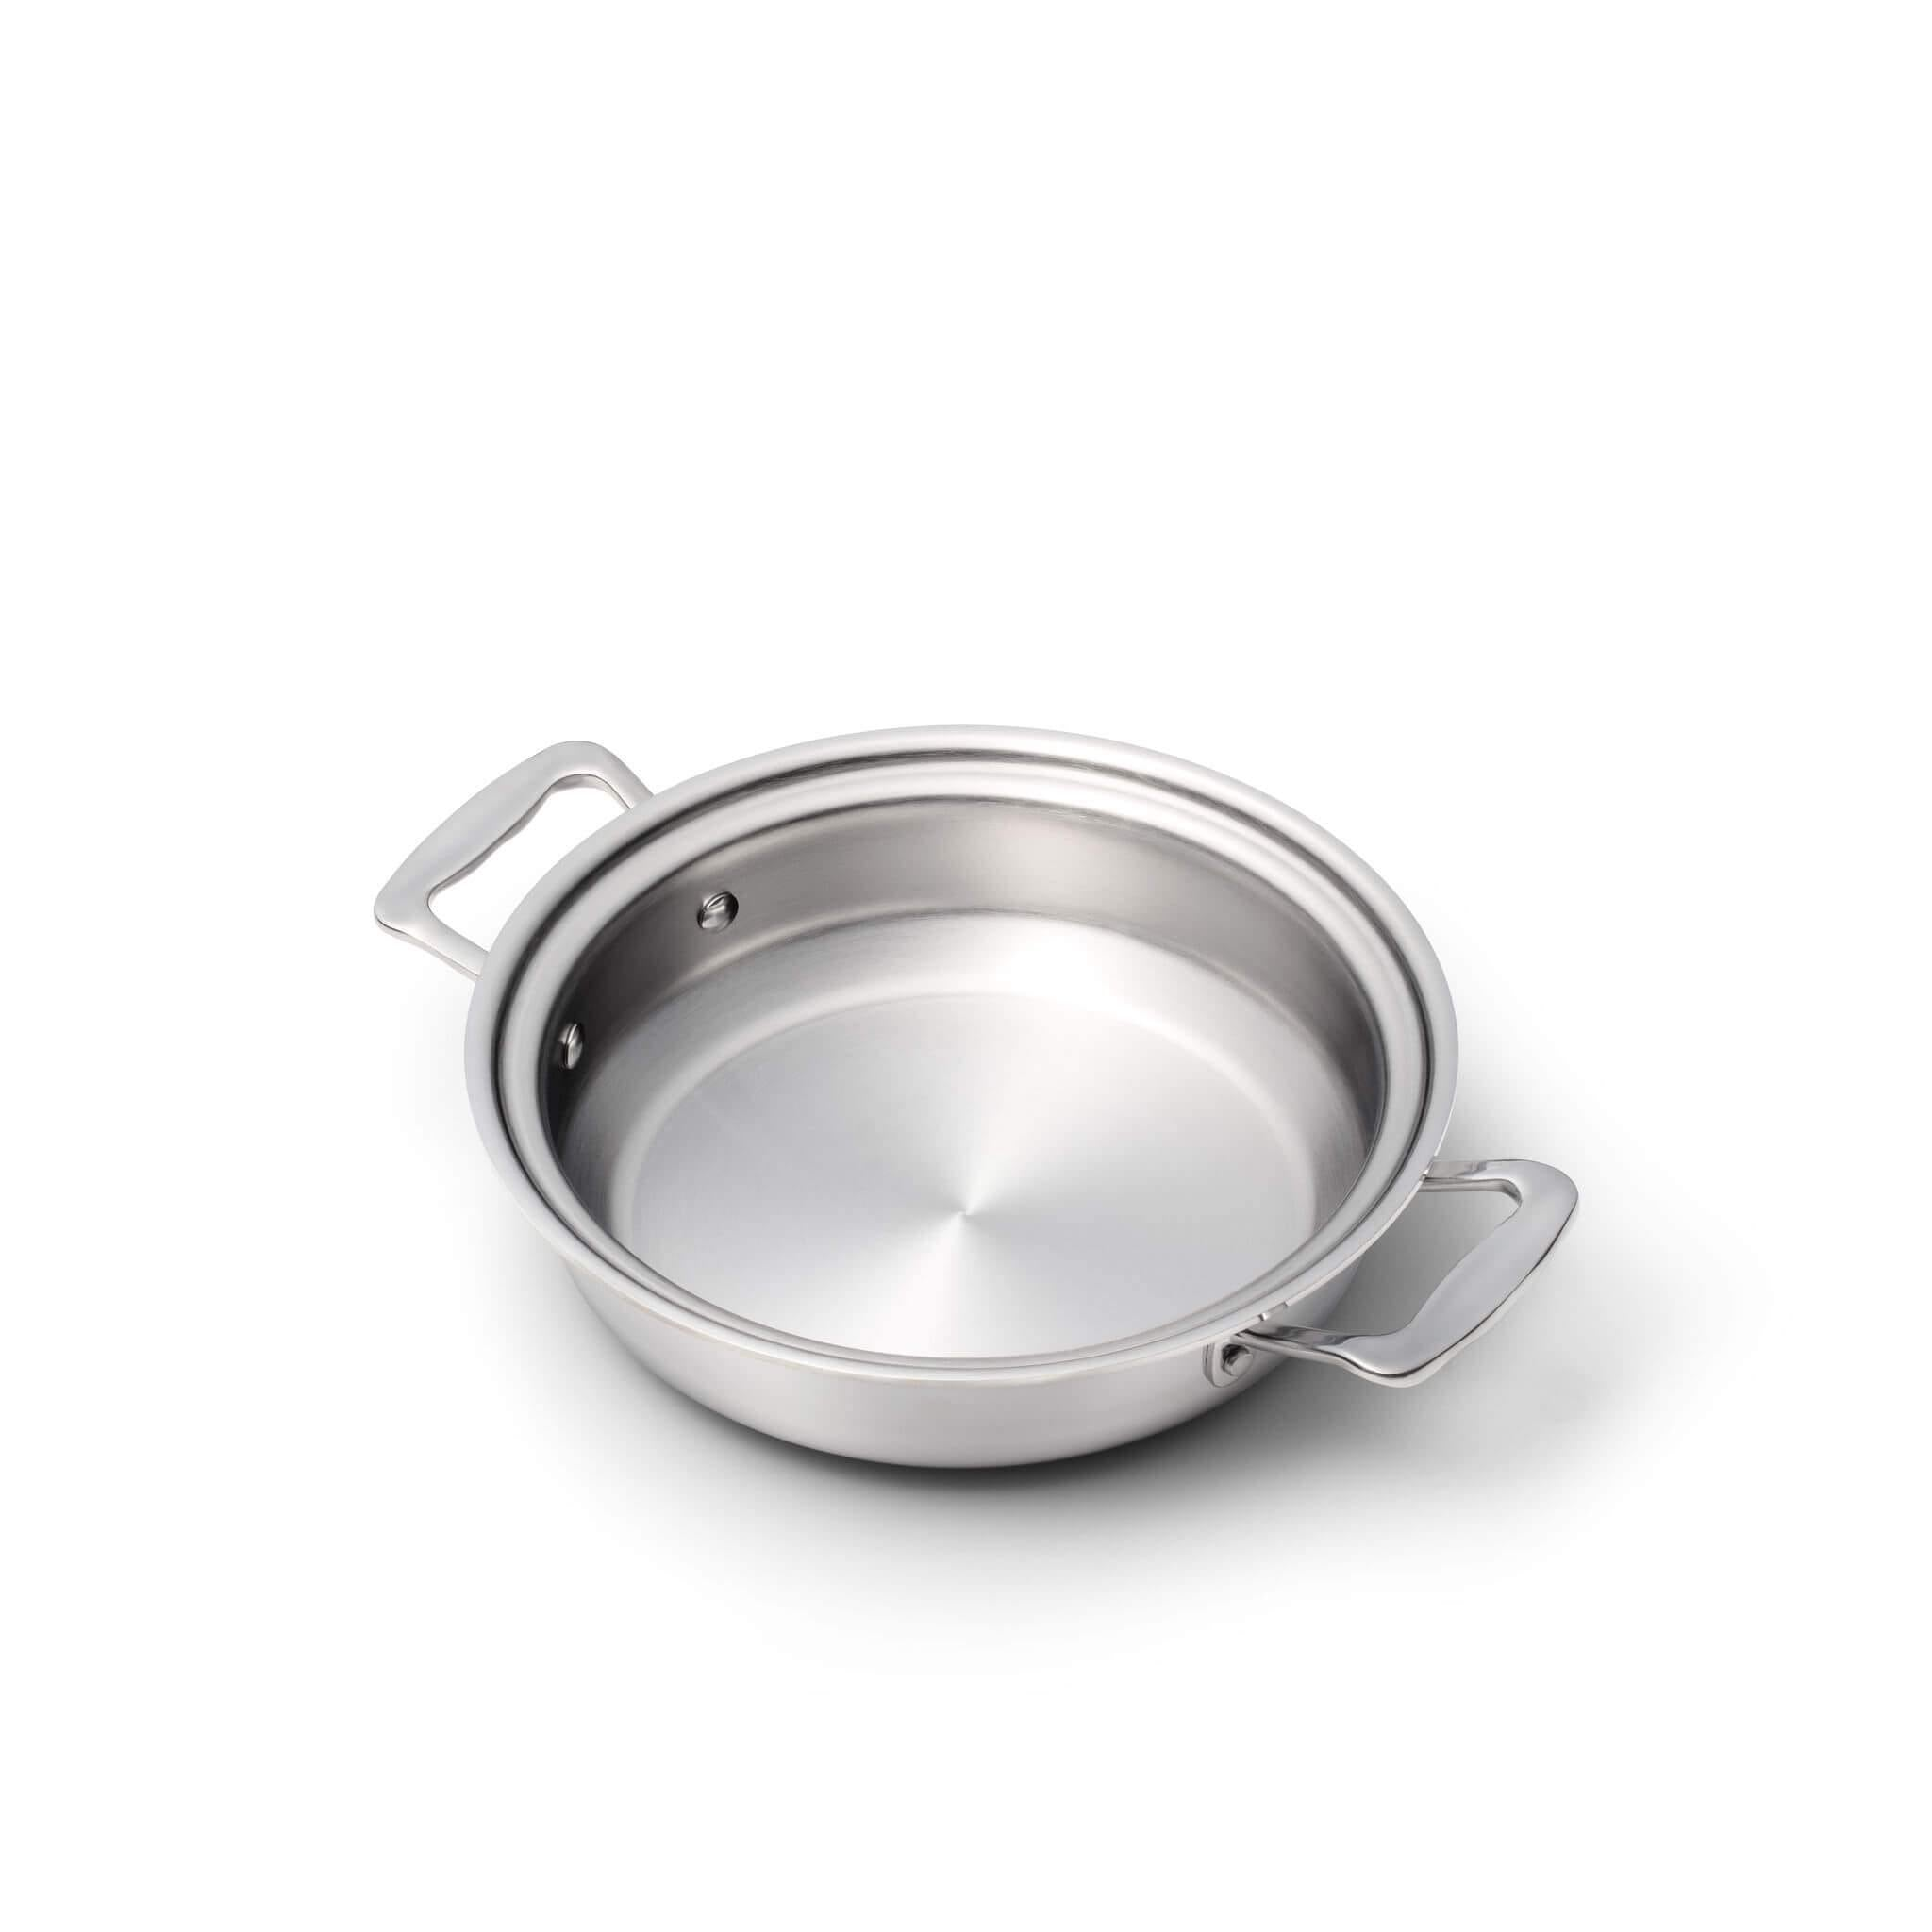 2.3 Quart Casserole with Cover